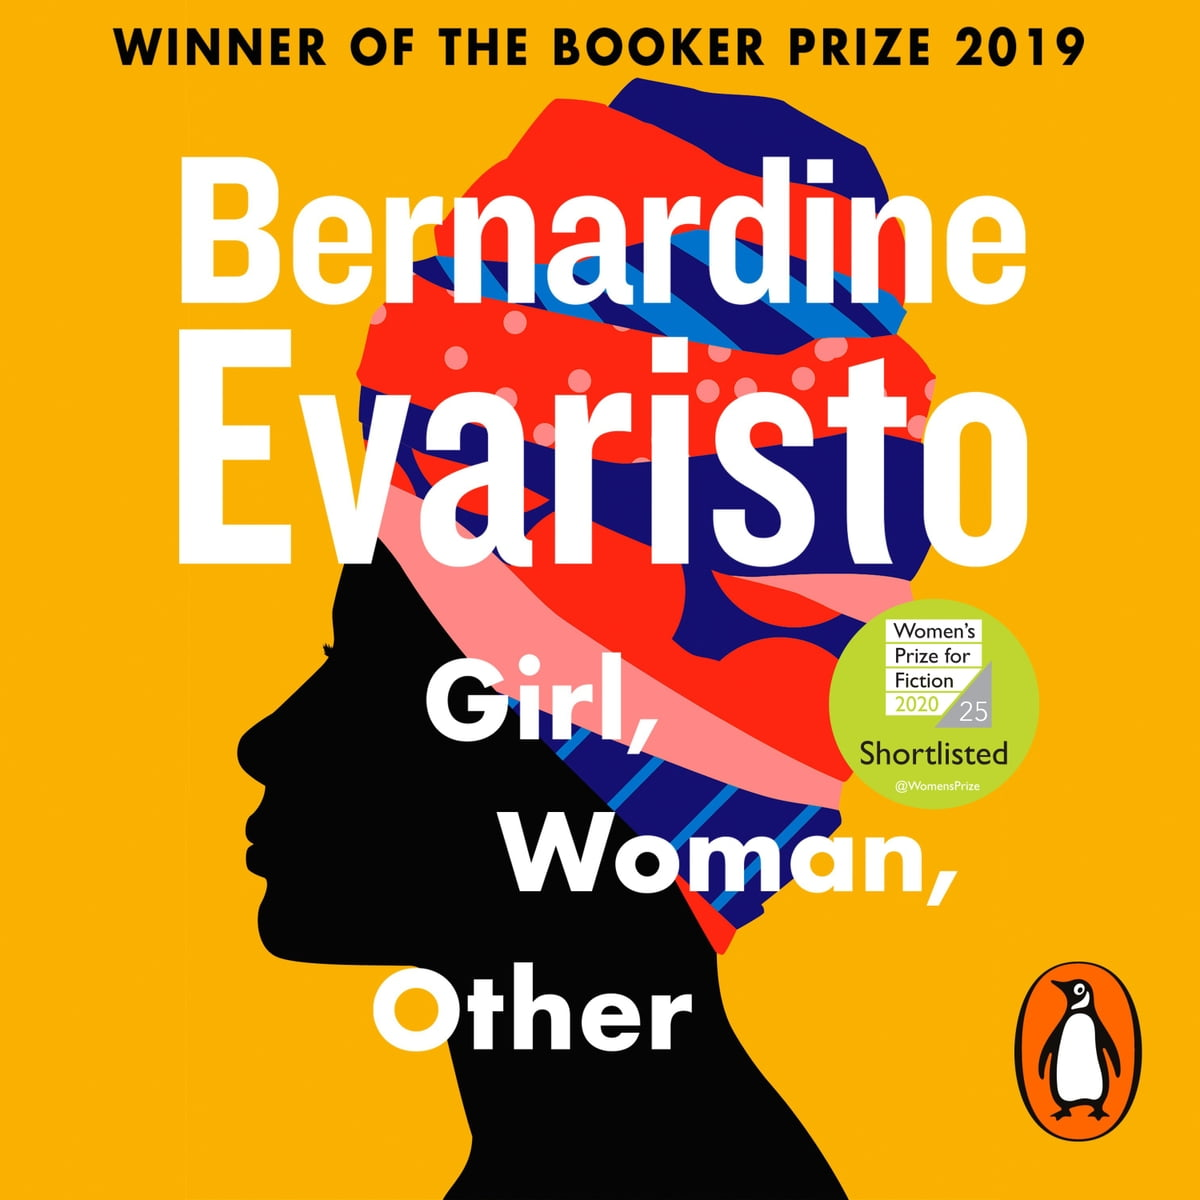 Girl, Woman, Other Audiobook by Bernardine Evaristo - 9780241987728 | Rakuten Kobo Ireland